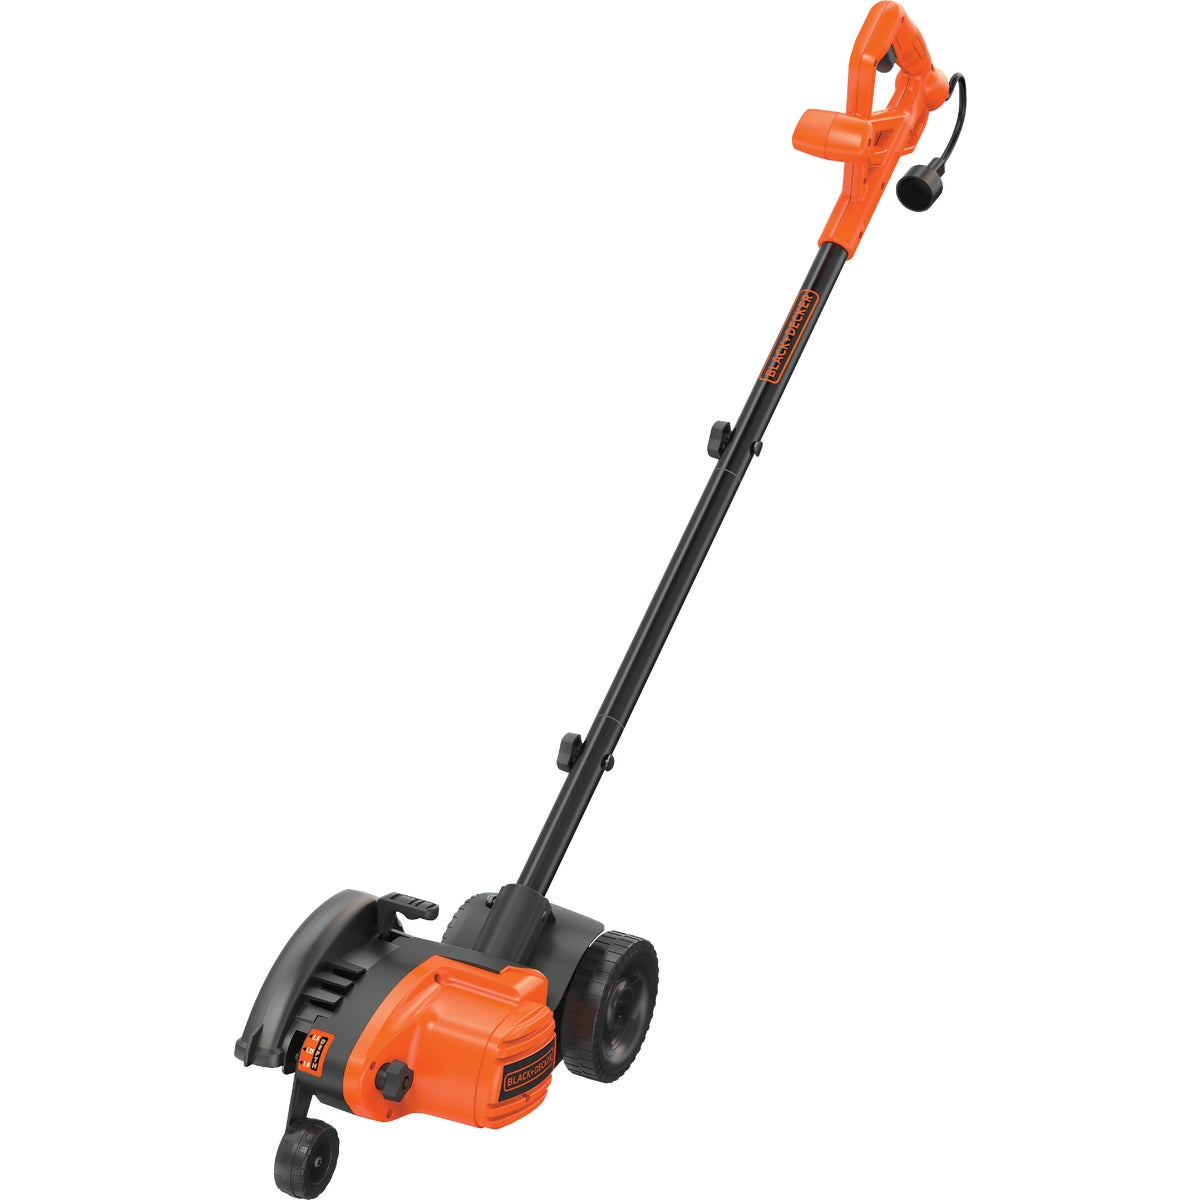 2.25HP LAWN EDGER - LE750 by Black & Decker